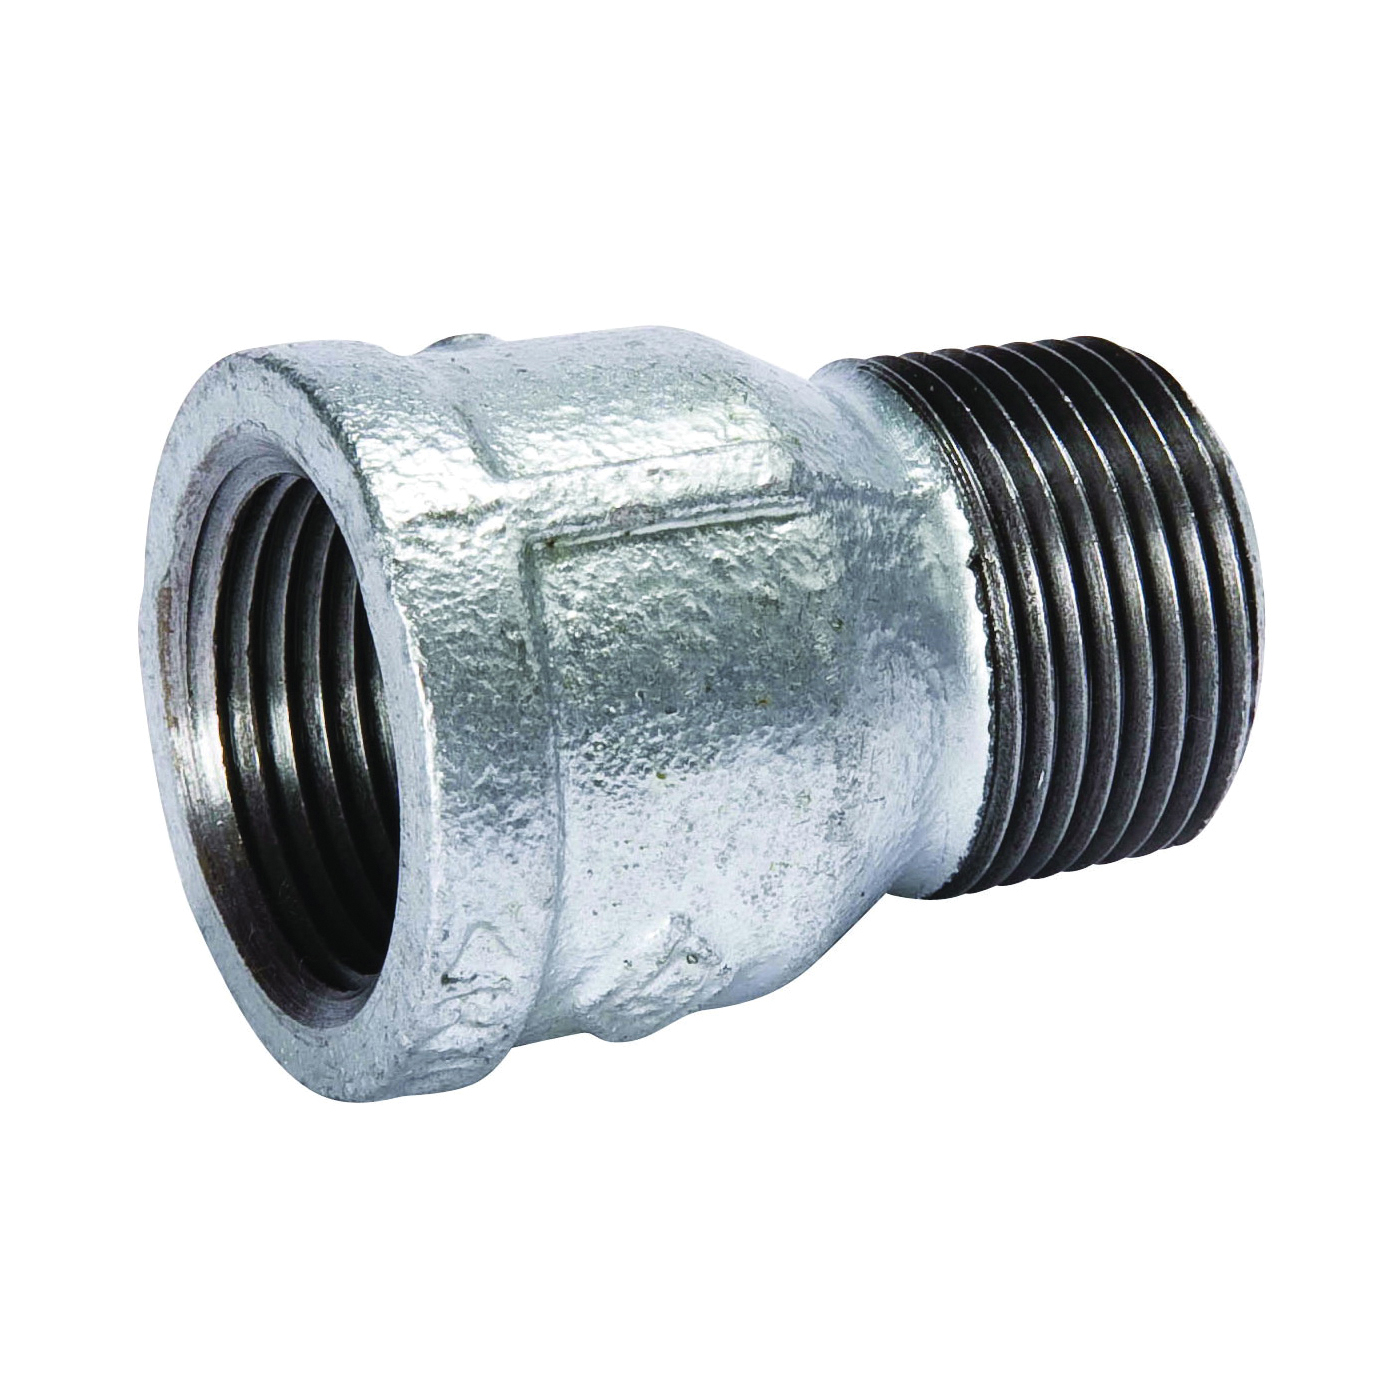 Picture of B & K 511-613 Galvanized Pipe Extension Piece, 1/2 in